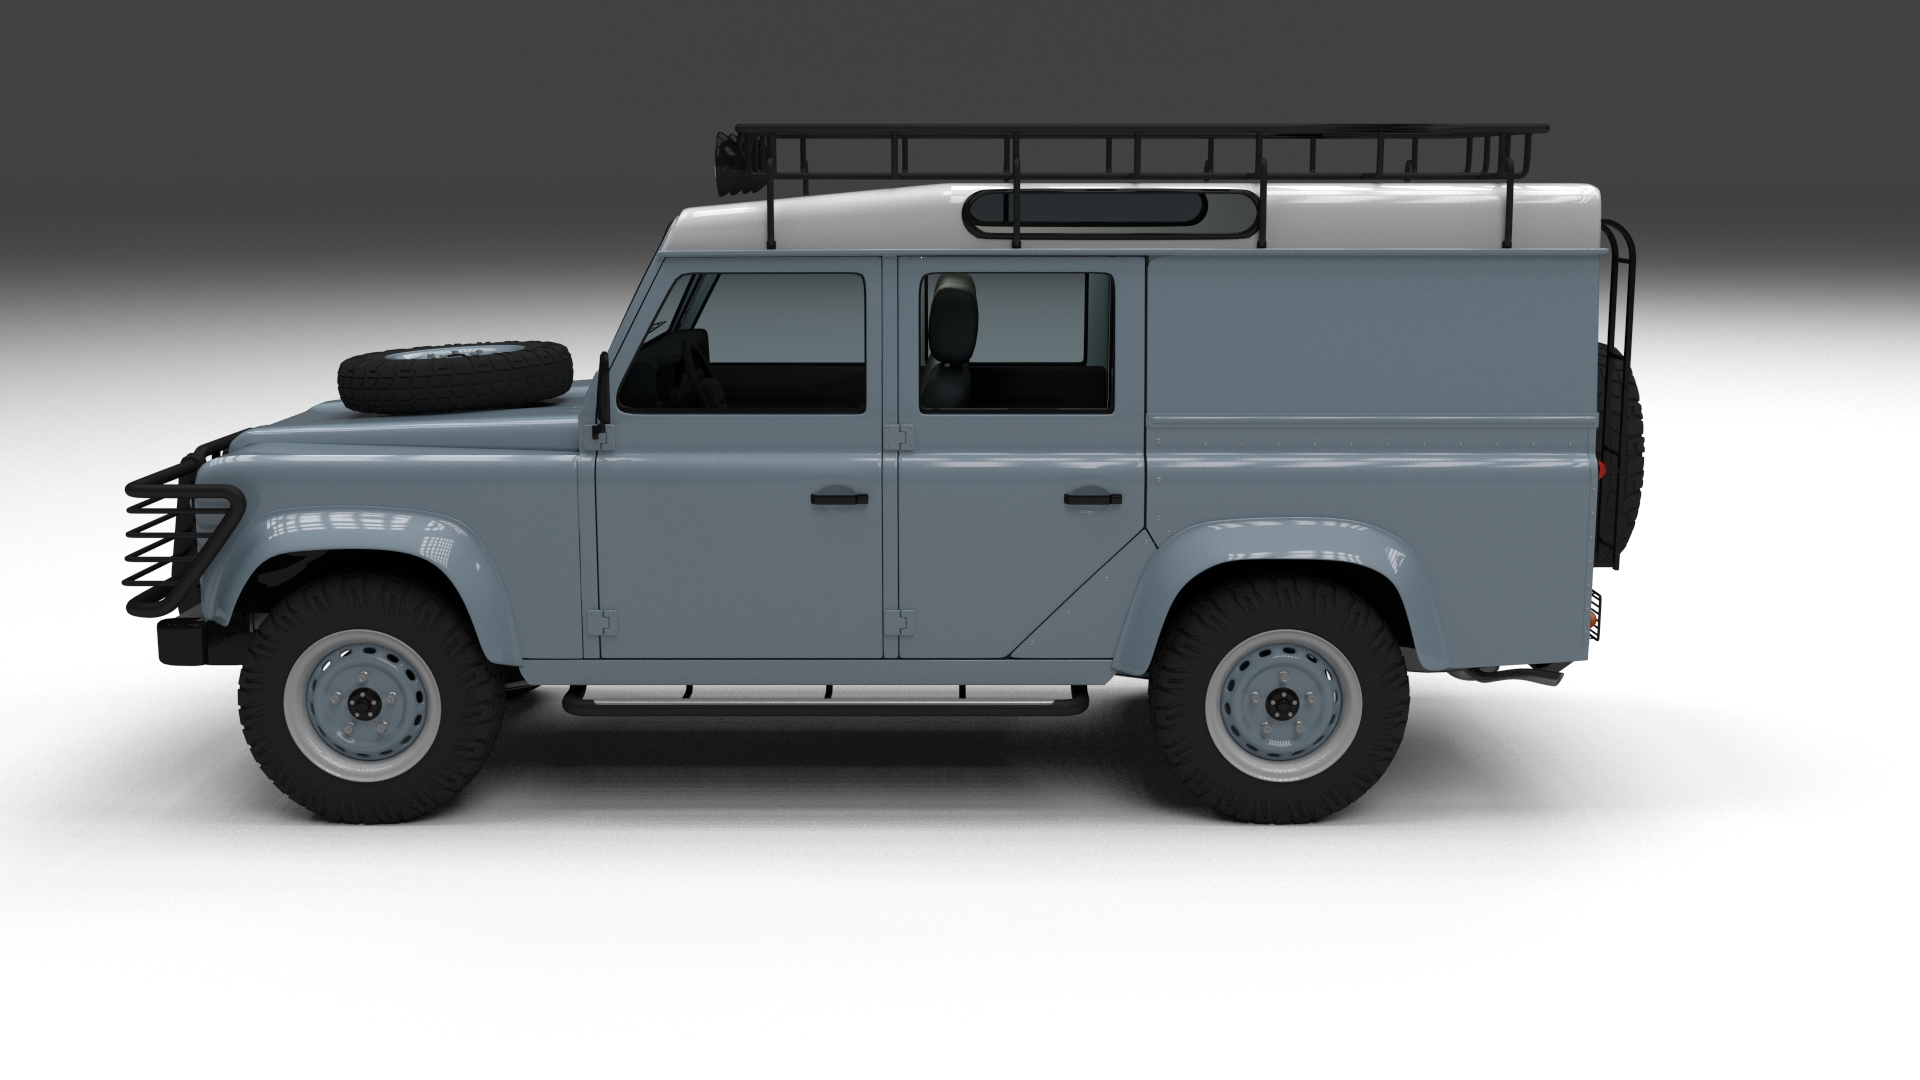 full land rover defender 110 utility station wagon 3d model. Black Bedroom Furniture Sets. Home Design Ideas